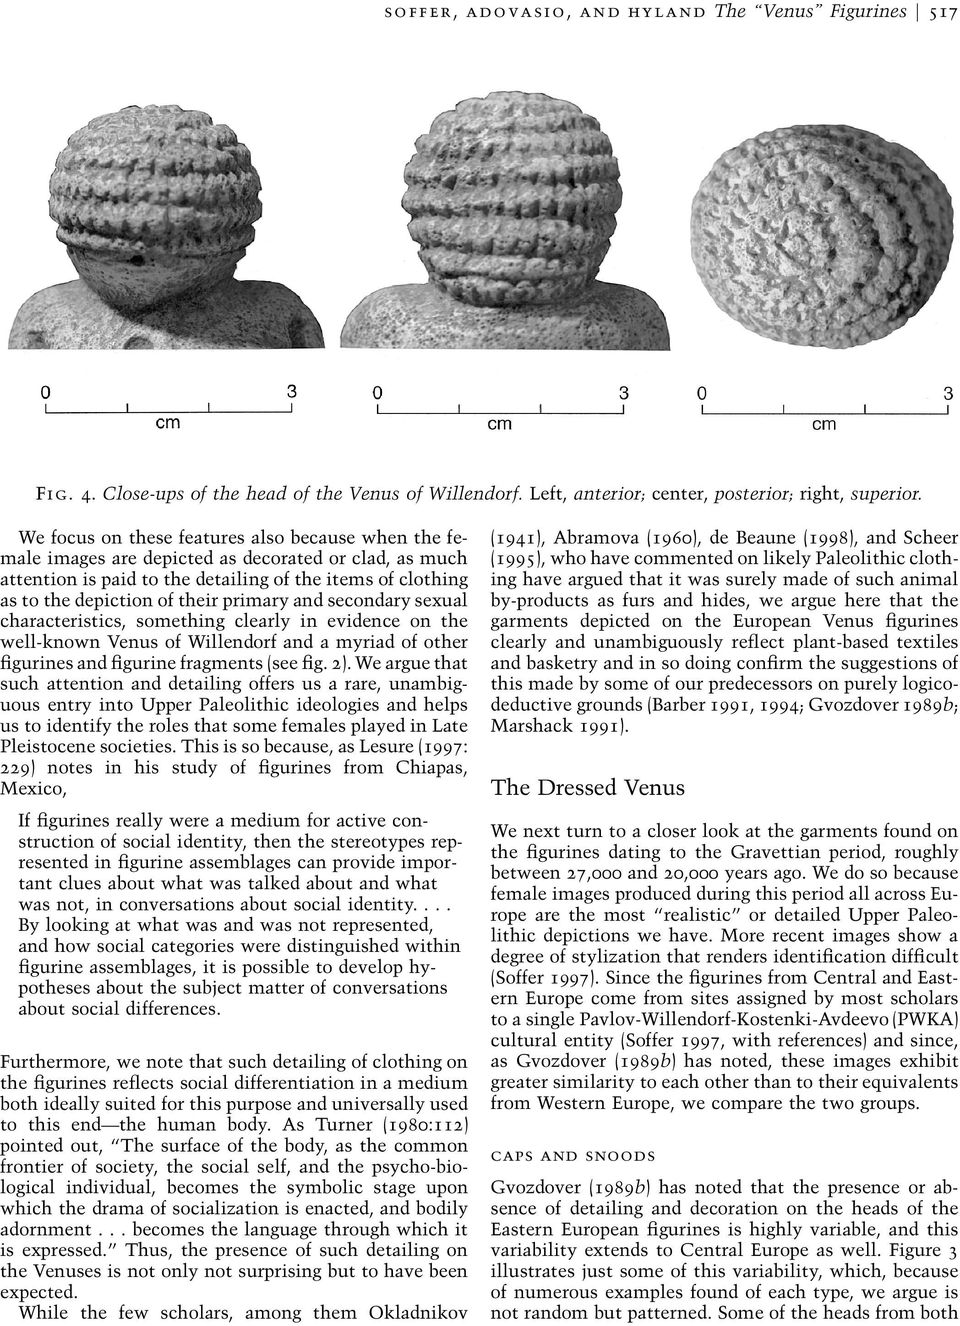 primary and secondary sexual characteristics, something clearly in evidence on the well-known Venus of Willendorf and a myriad of other figurines and figurine fragments (see fig. 2).